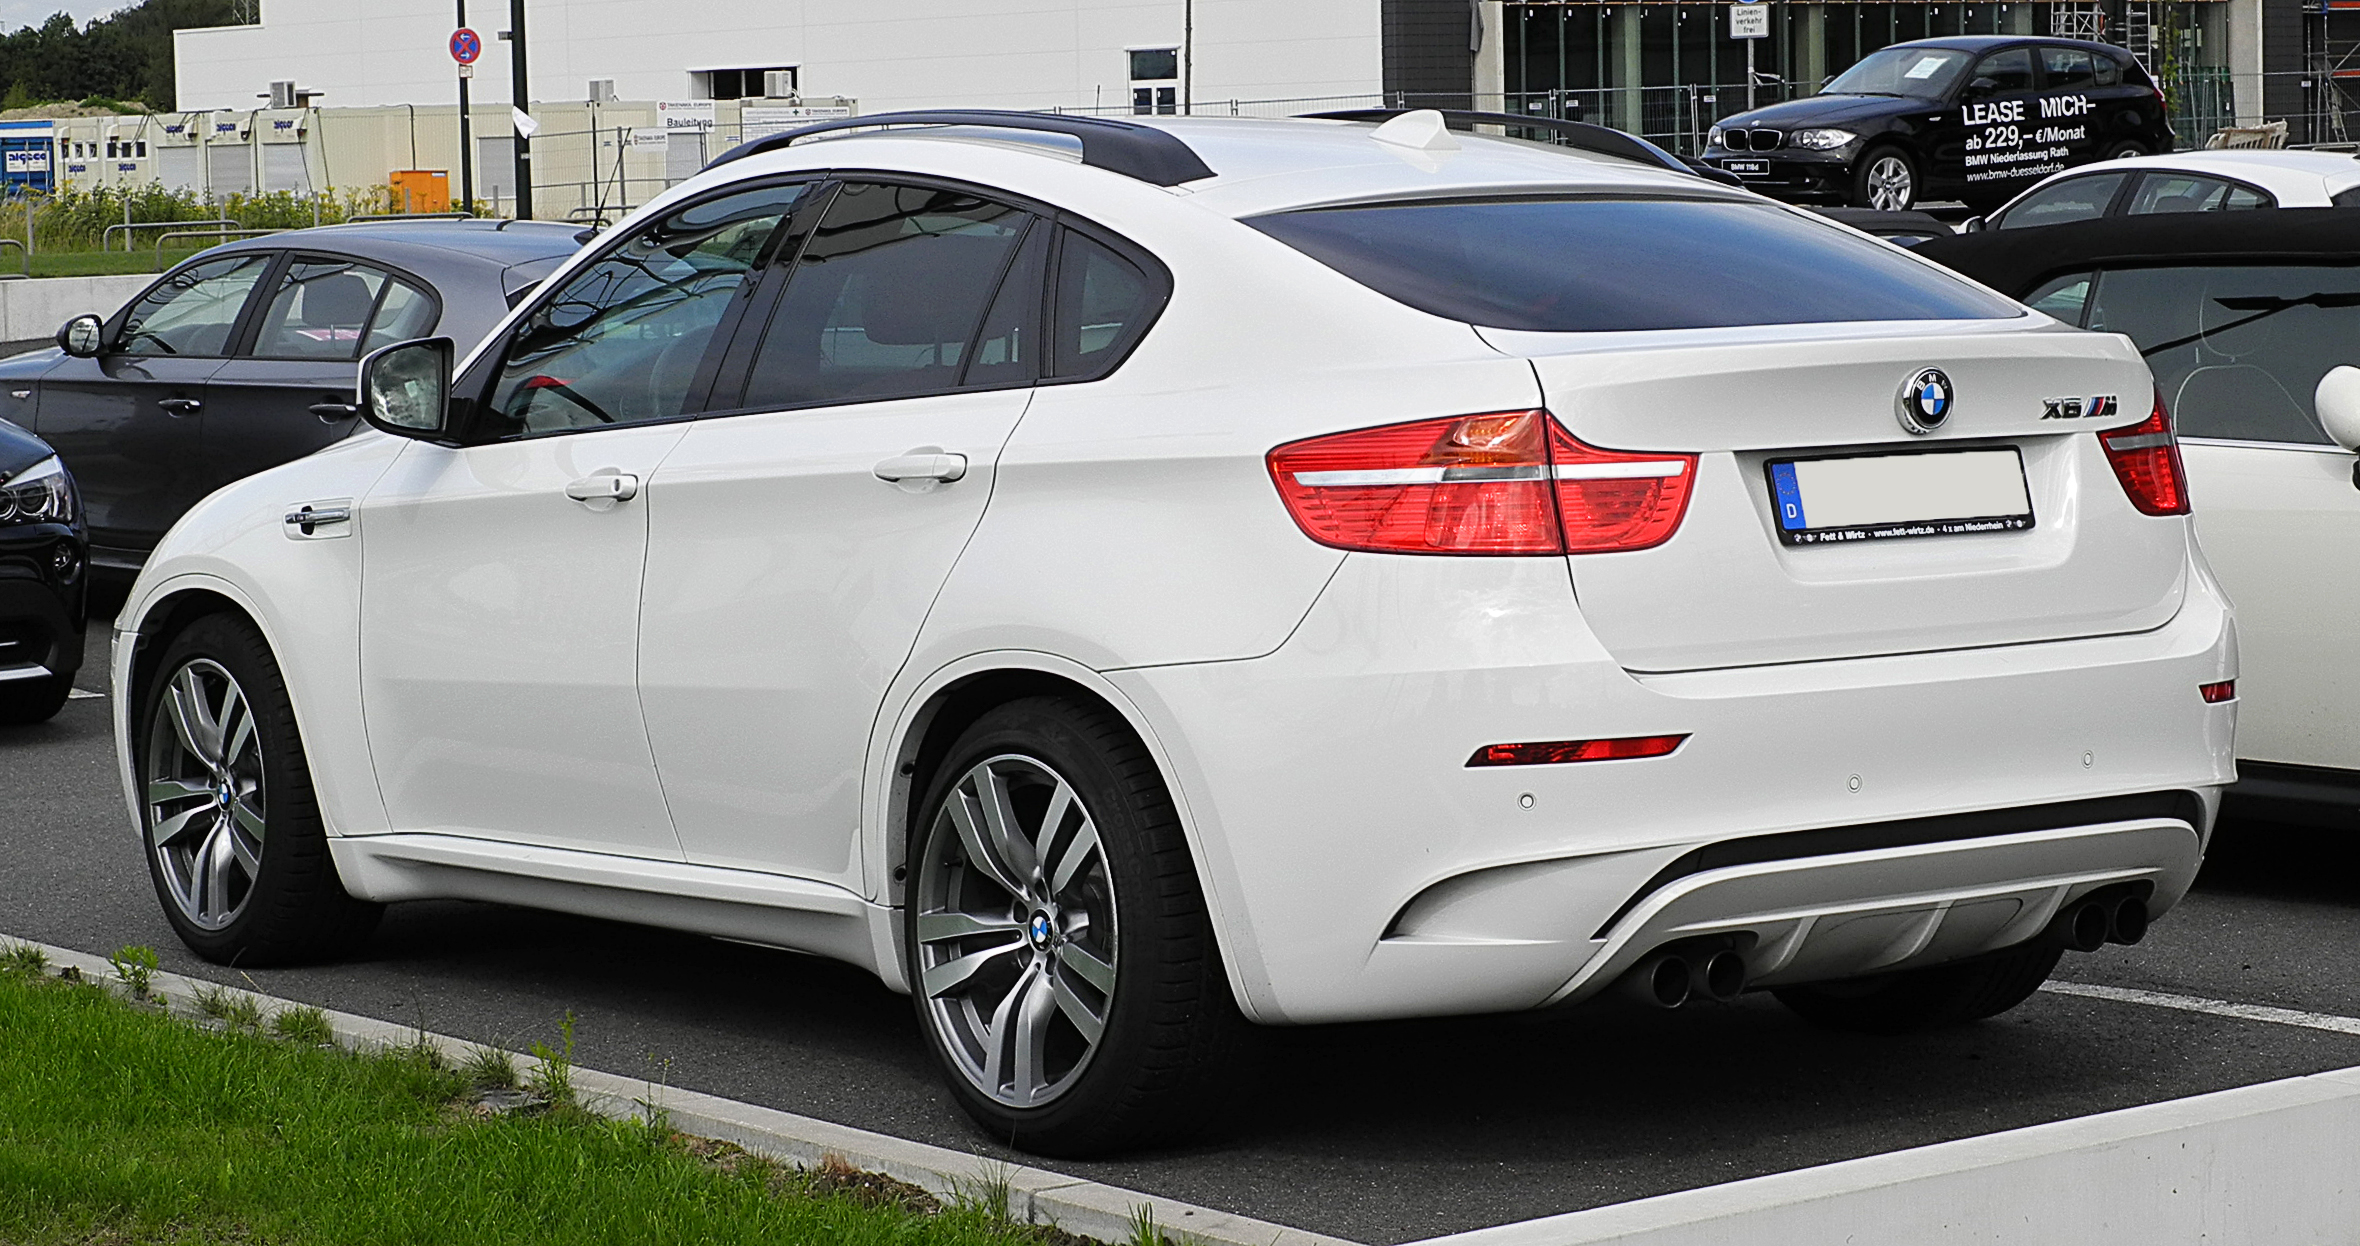 bmw x6 images #2